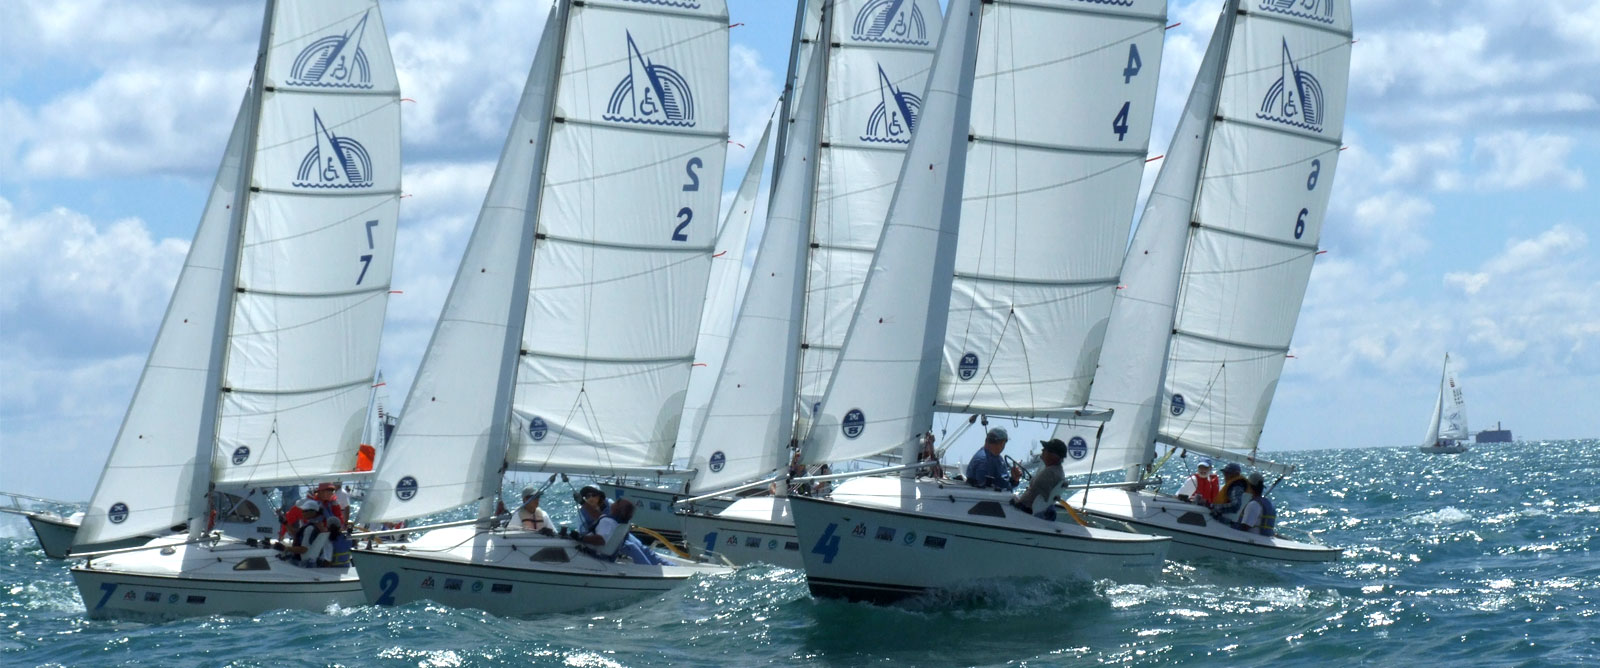 The Judd Goldman Adaptive Sailing Program